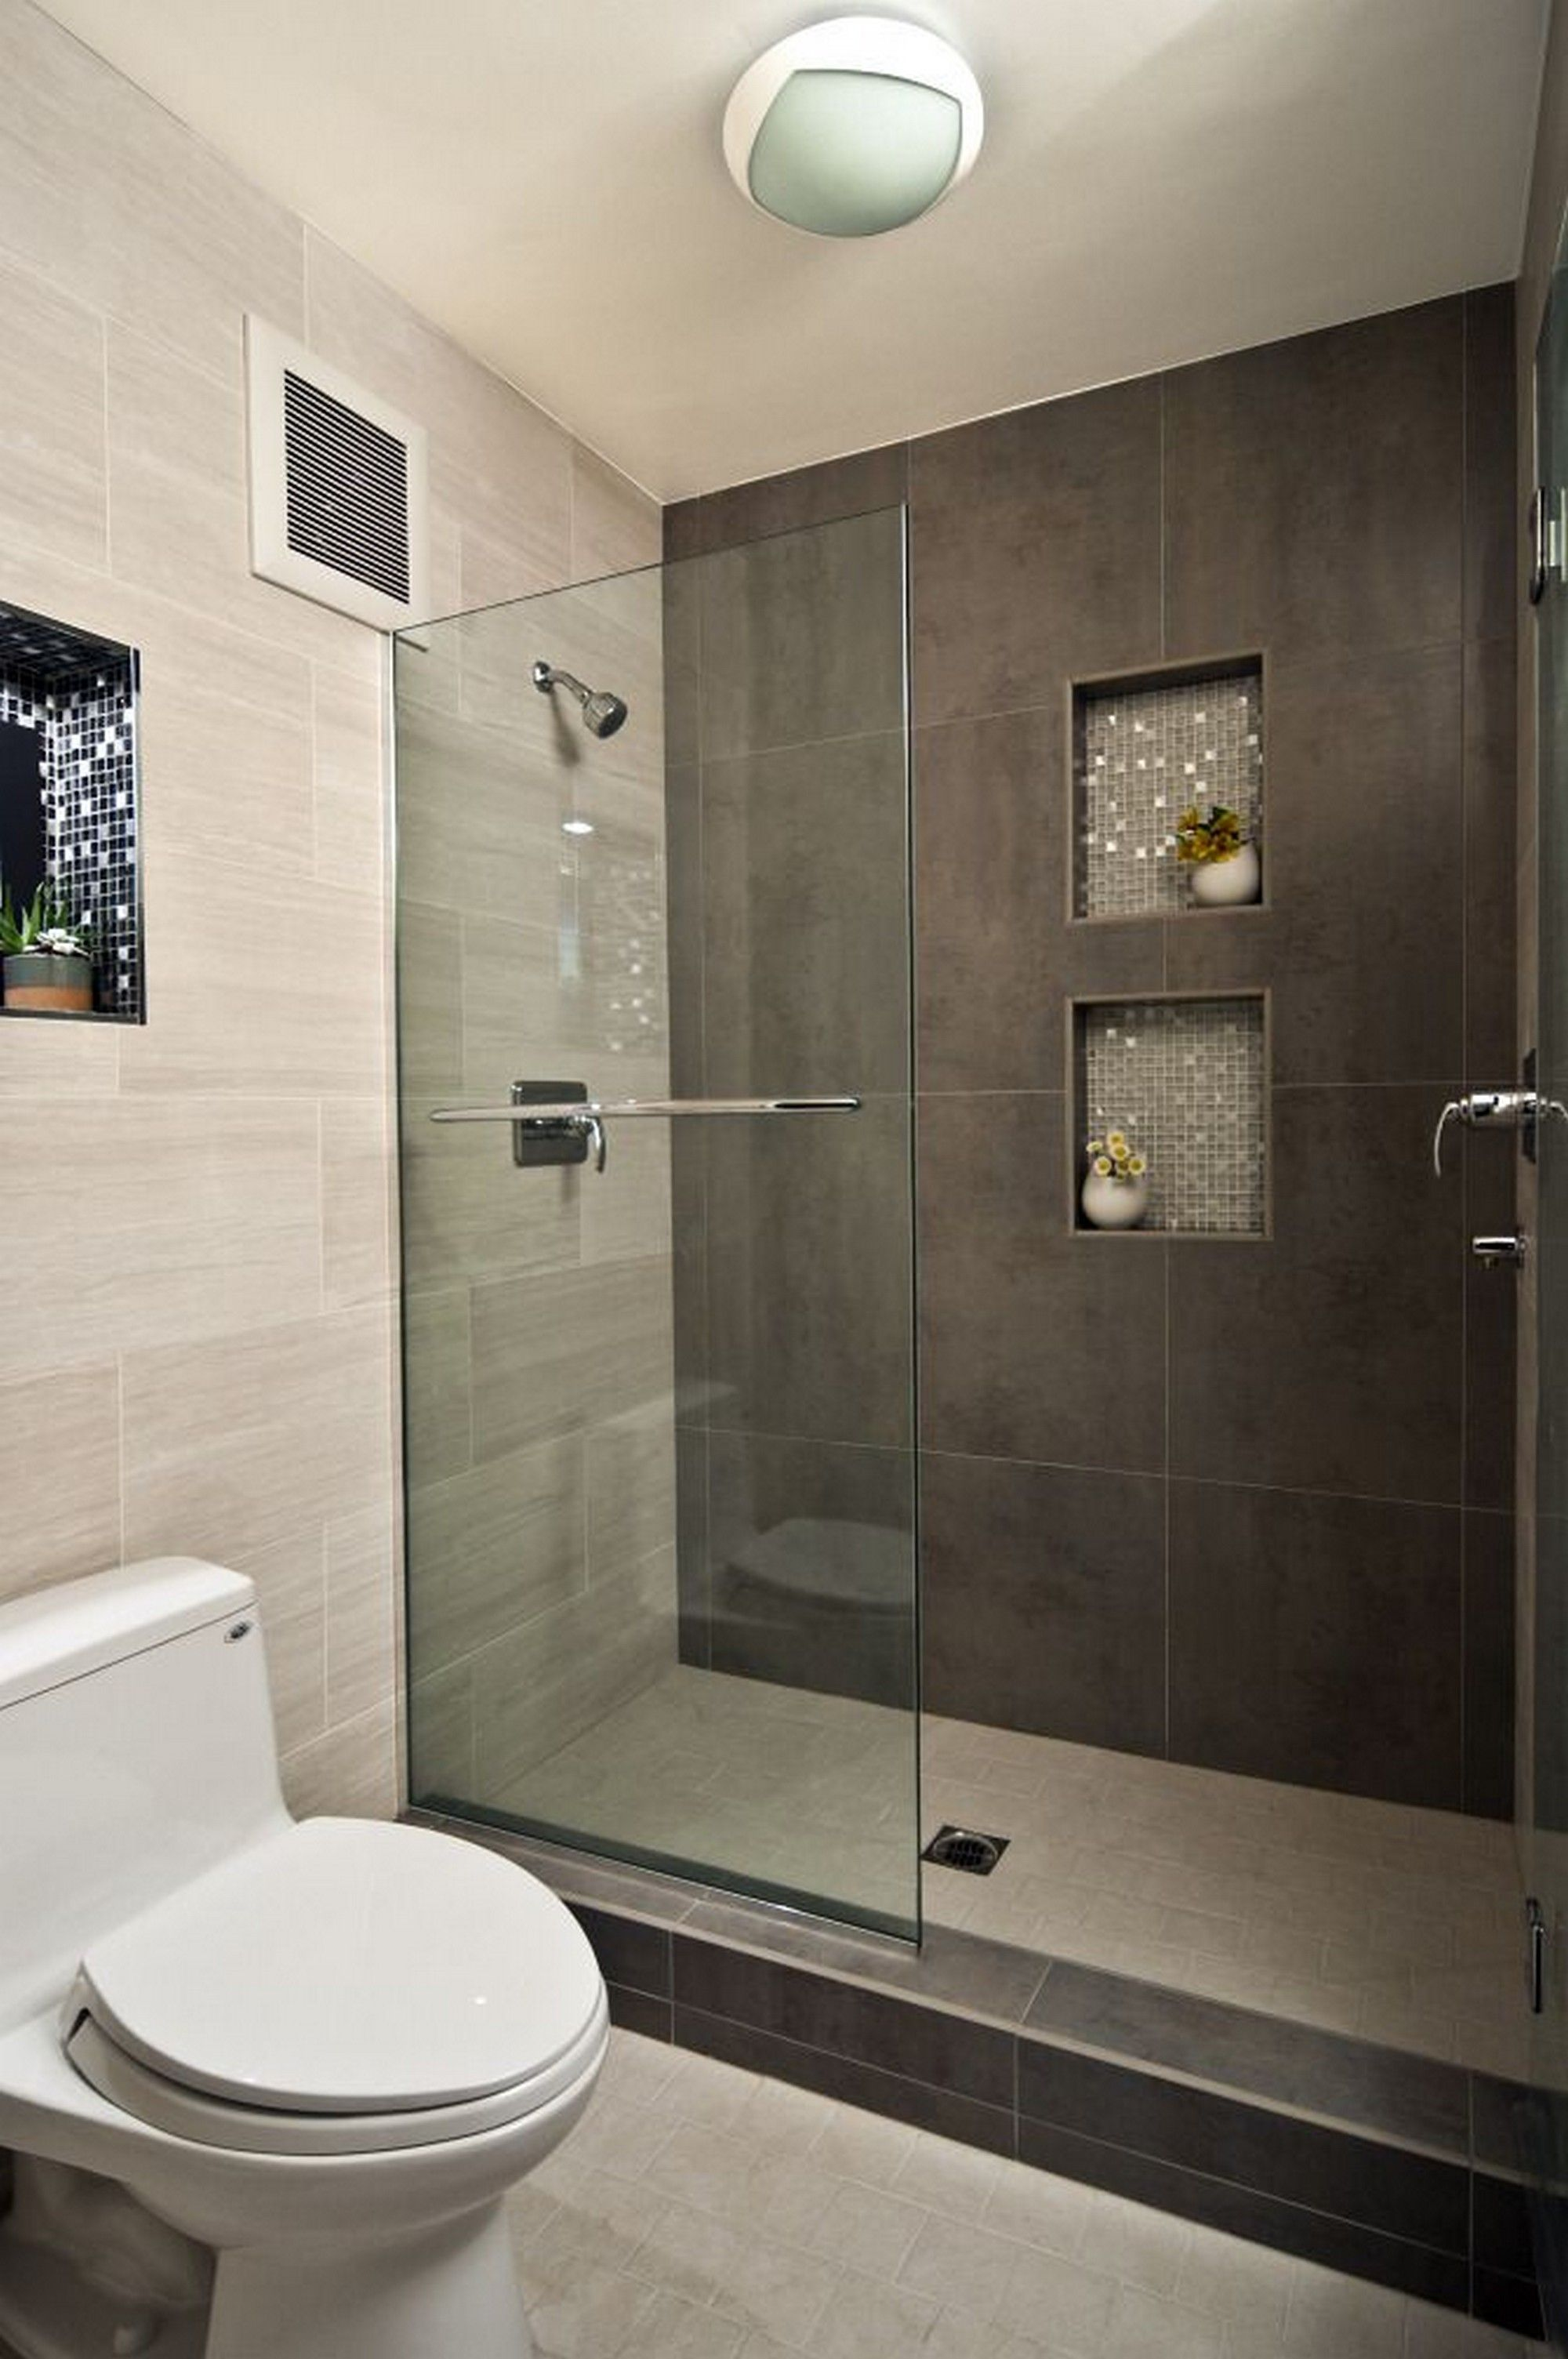 Modern bathroom design ideas with walk in shower small for Small modern bathroom designs 2012